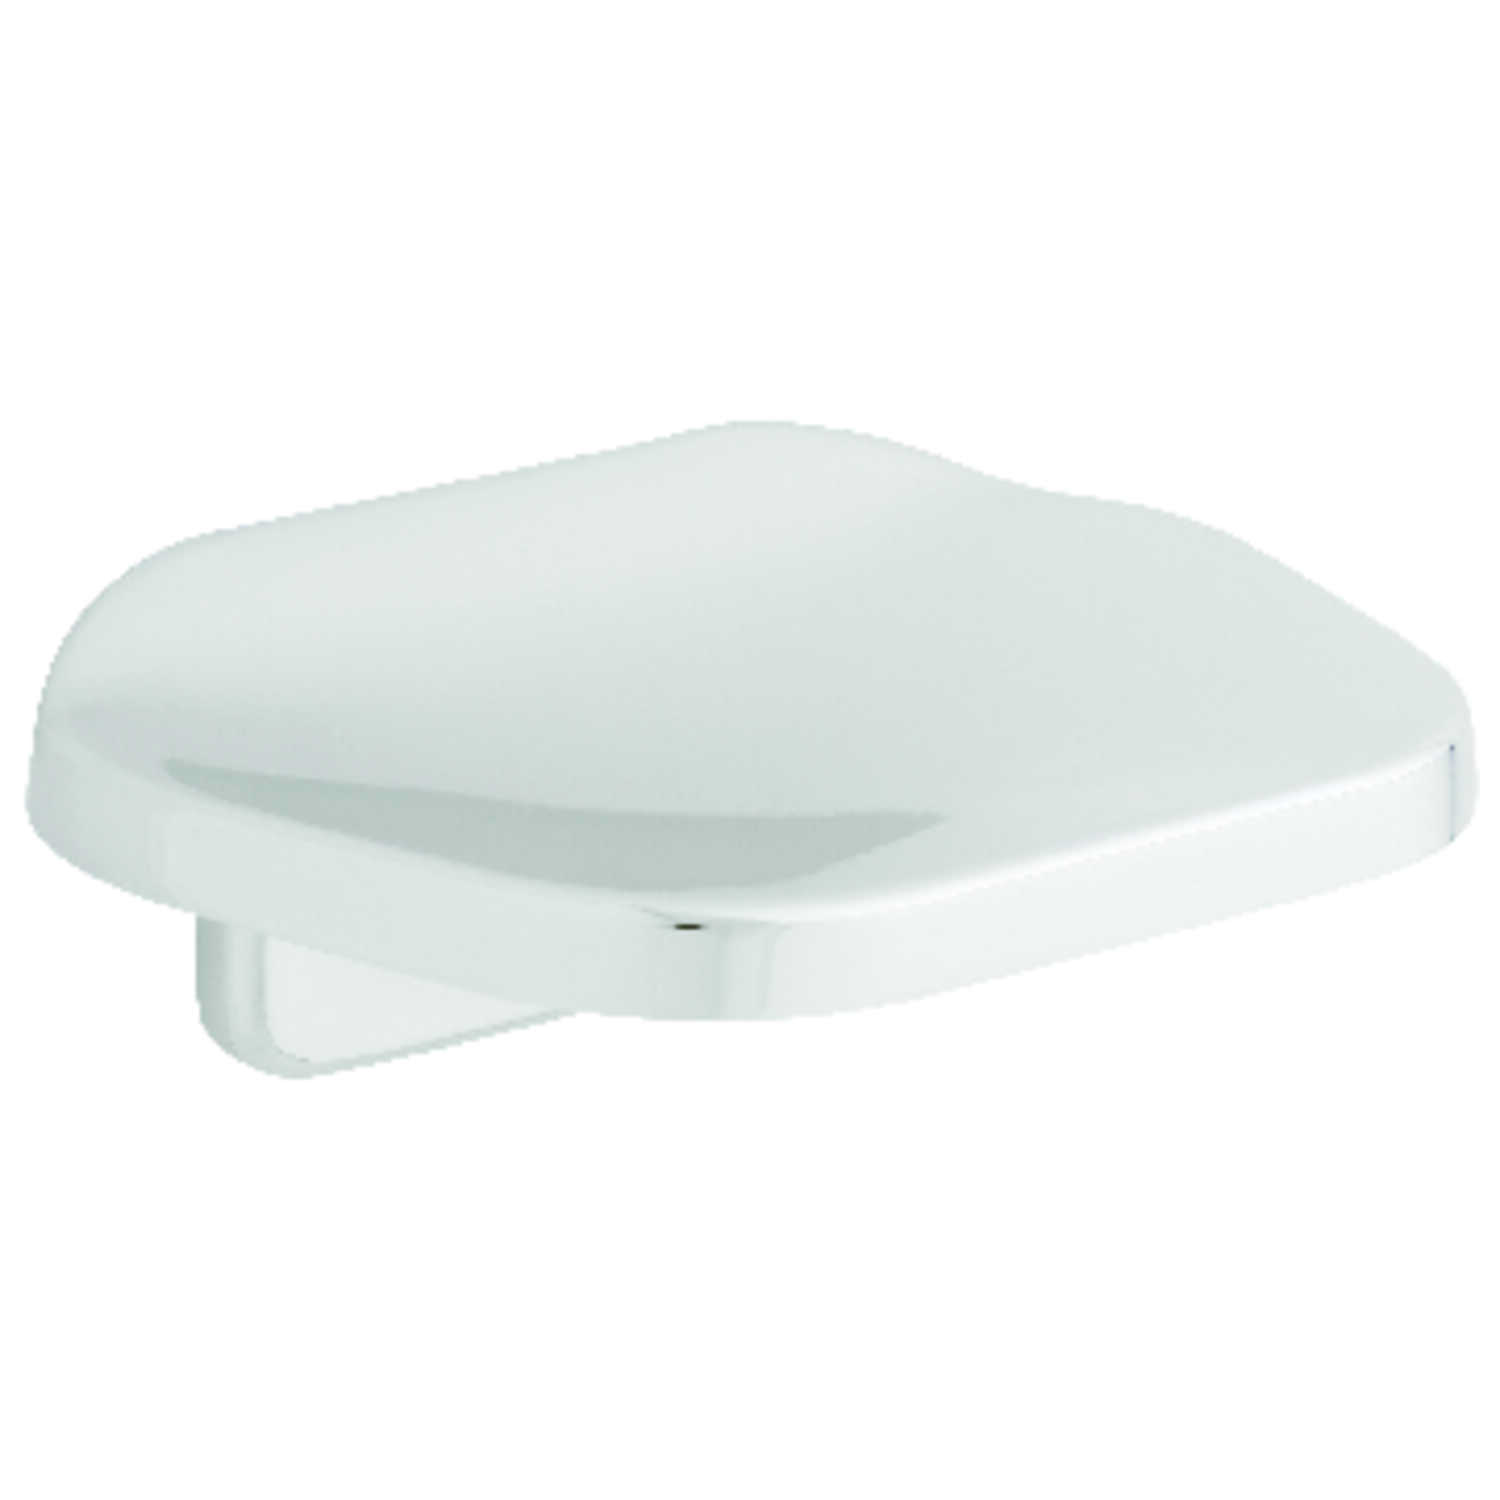 Franklin Brass  Futura  Soap Dish  1.7 in. H x 3.4 in. W x 4.5 in. L Chrome  Die Cast Zinc